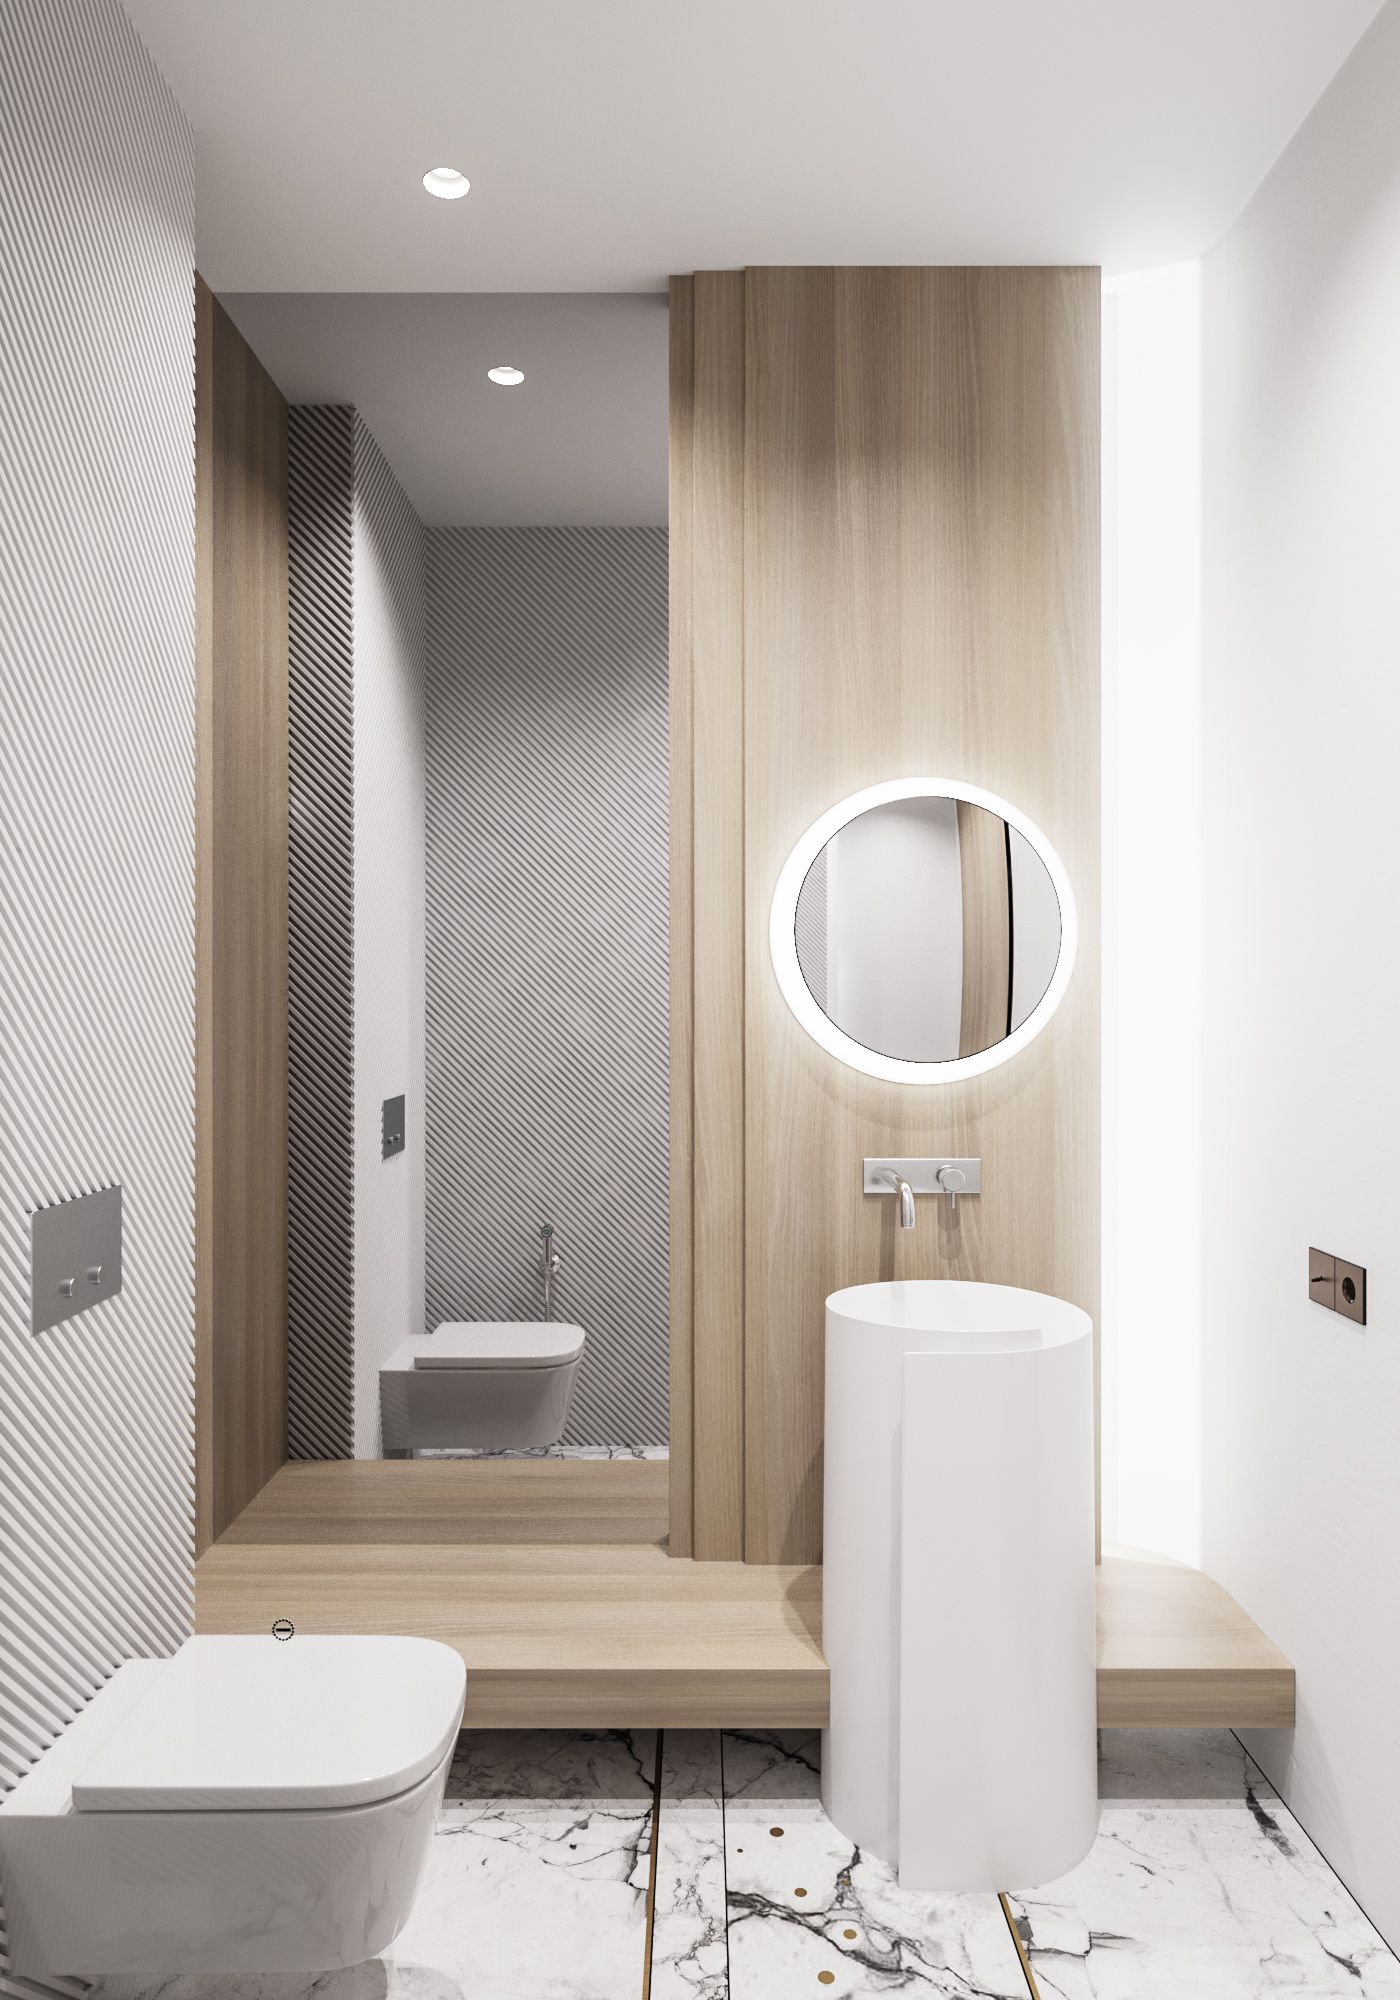 Our visualization for - NIDO interiors #onirender #oniproject ...